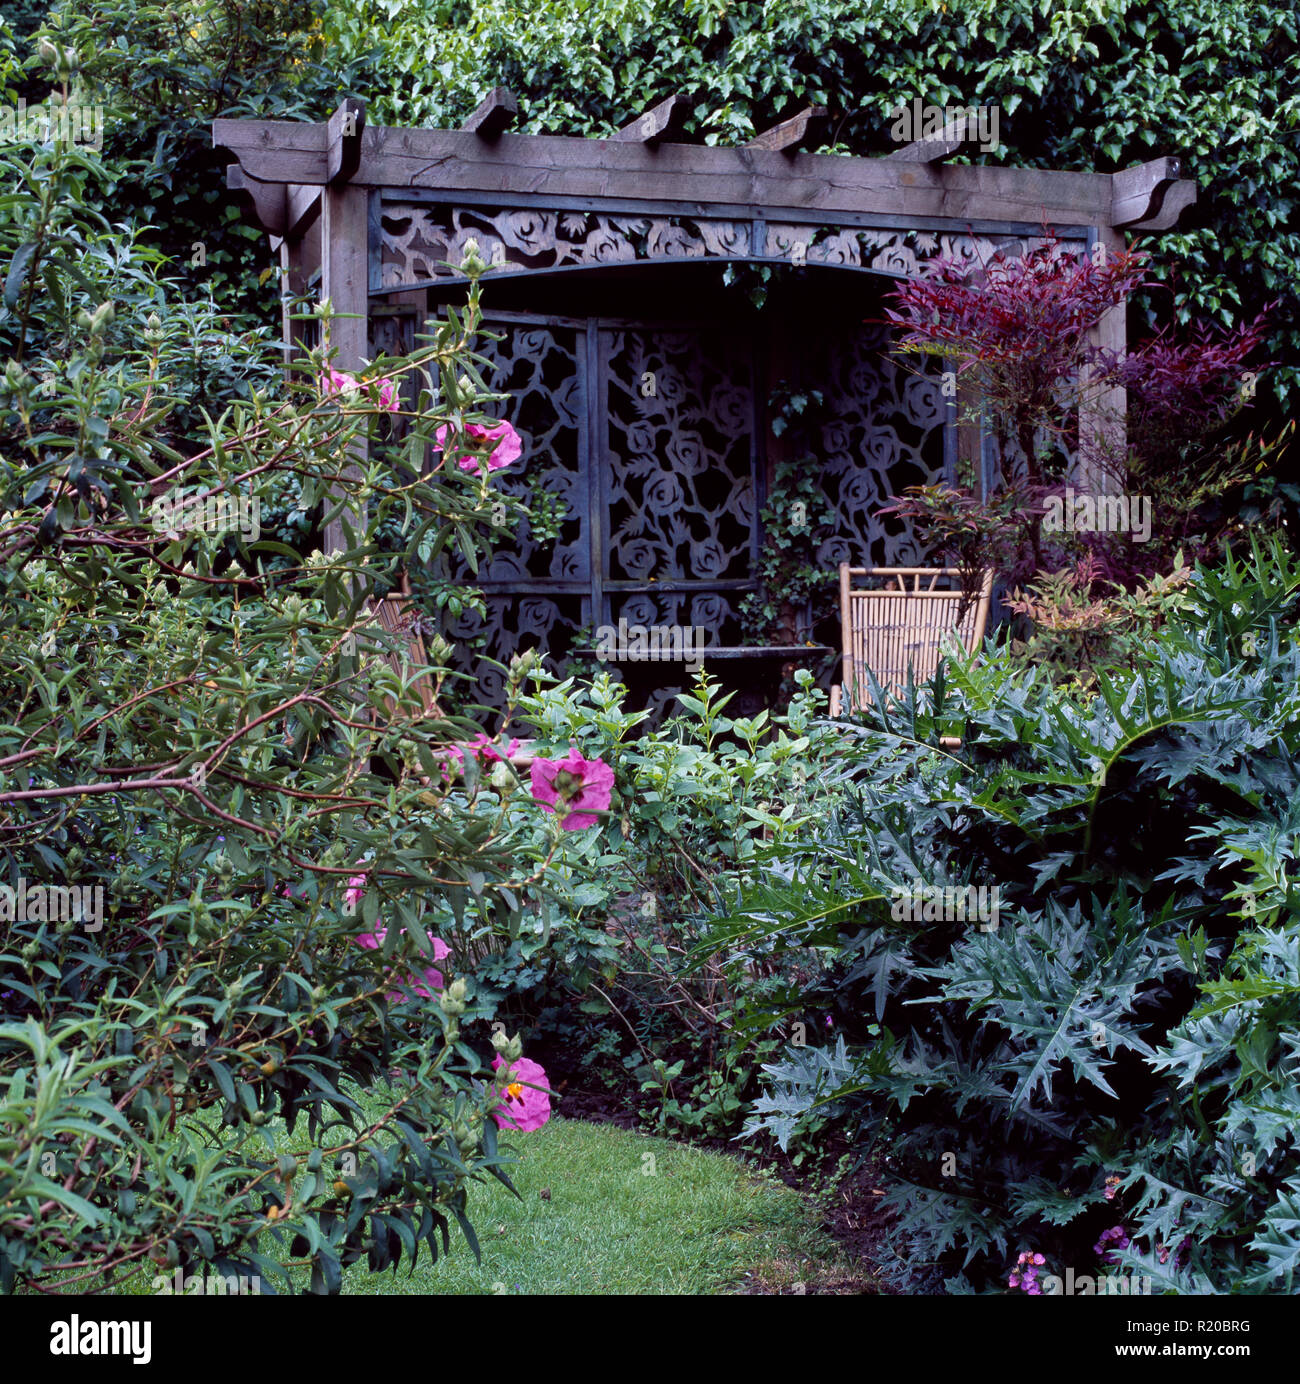 Pink cistus and green shrubs in front of ornate gazebo - Stock Image